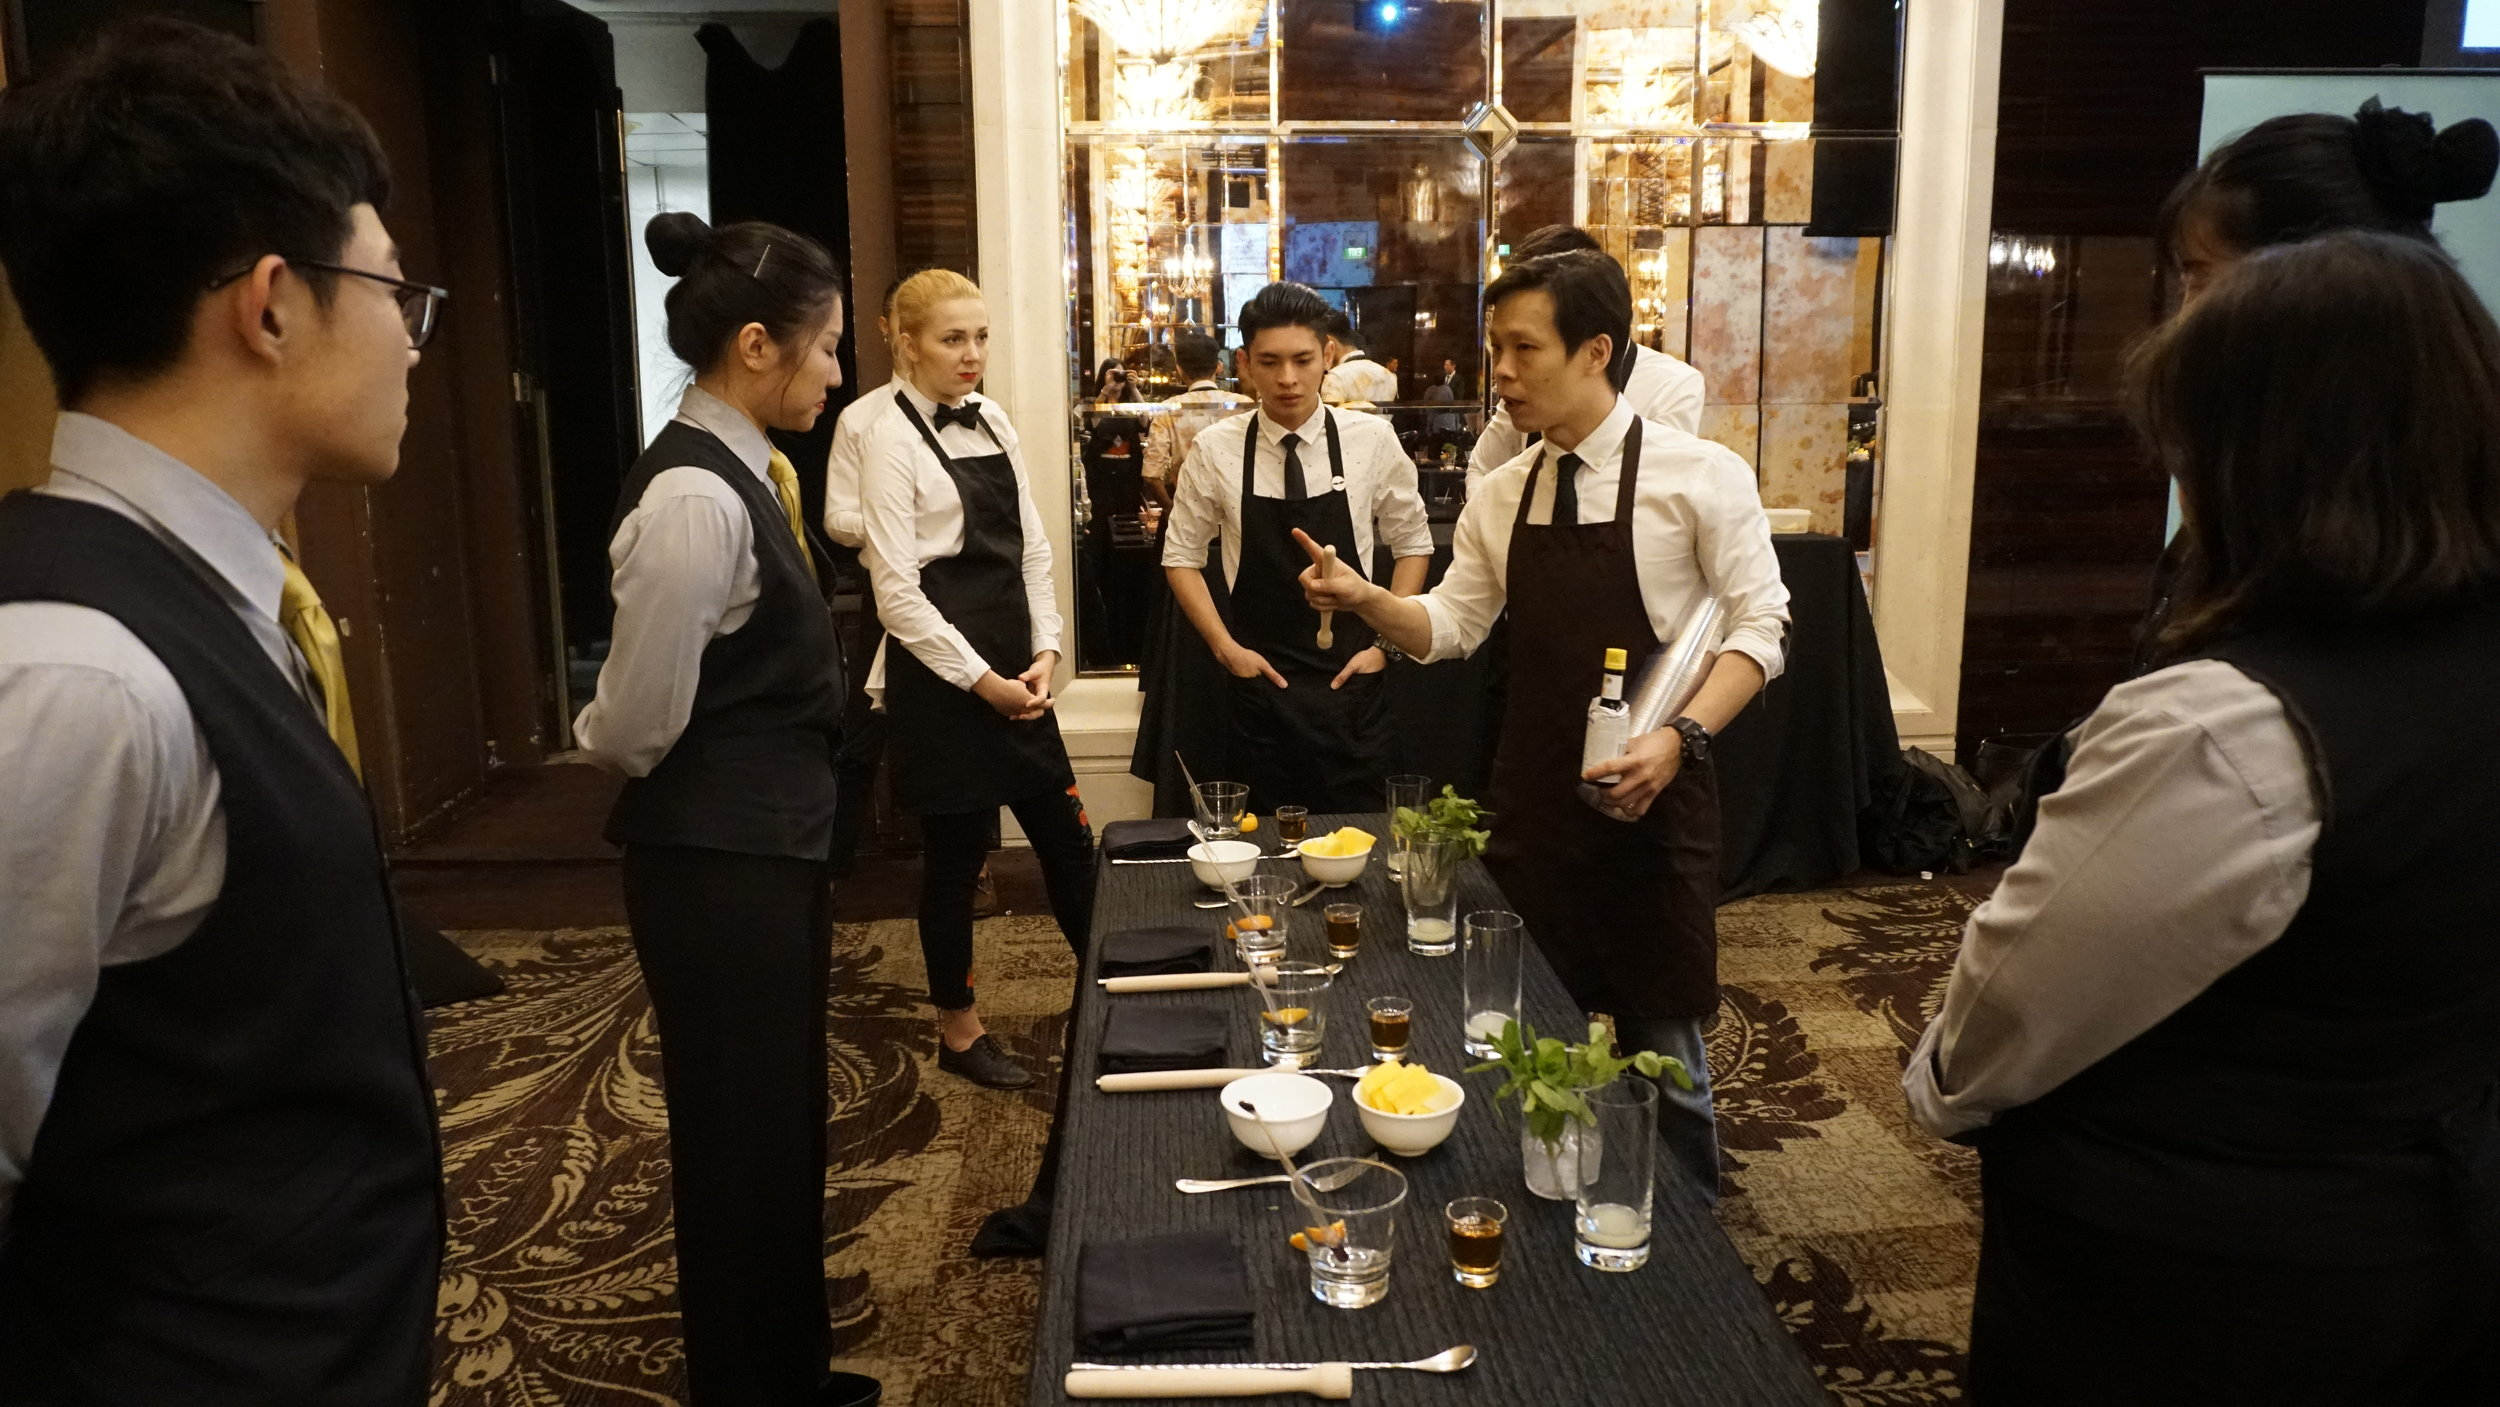 StRegis_Scholar_Mixology_Workshop_0001.JPG